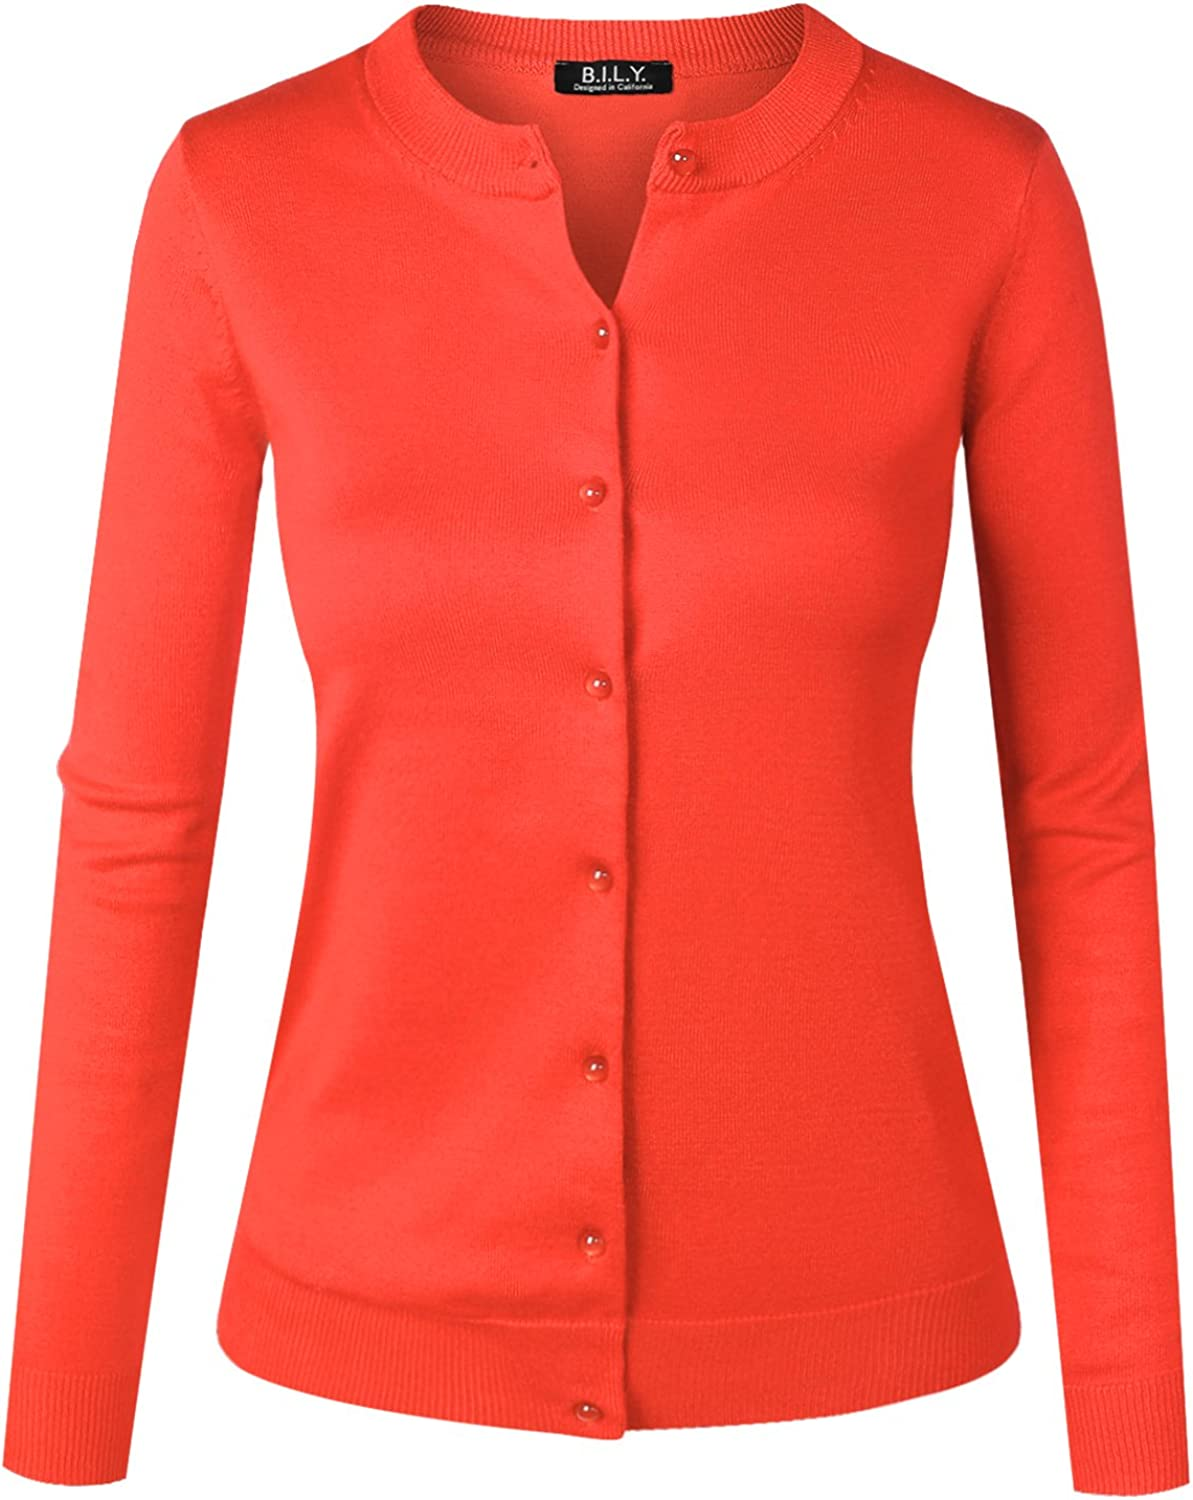 BH B.I.L.Y USA Women's Unique Button Long Sleeve Soft Knit Cardigan Sweater Coral2 1XLarge